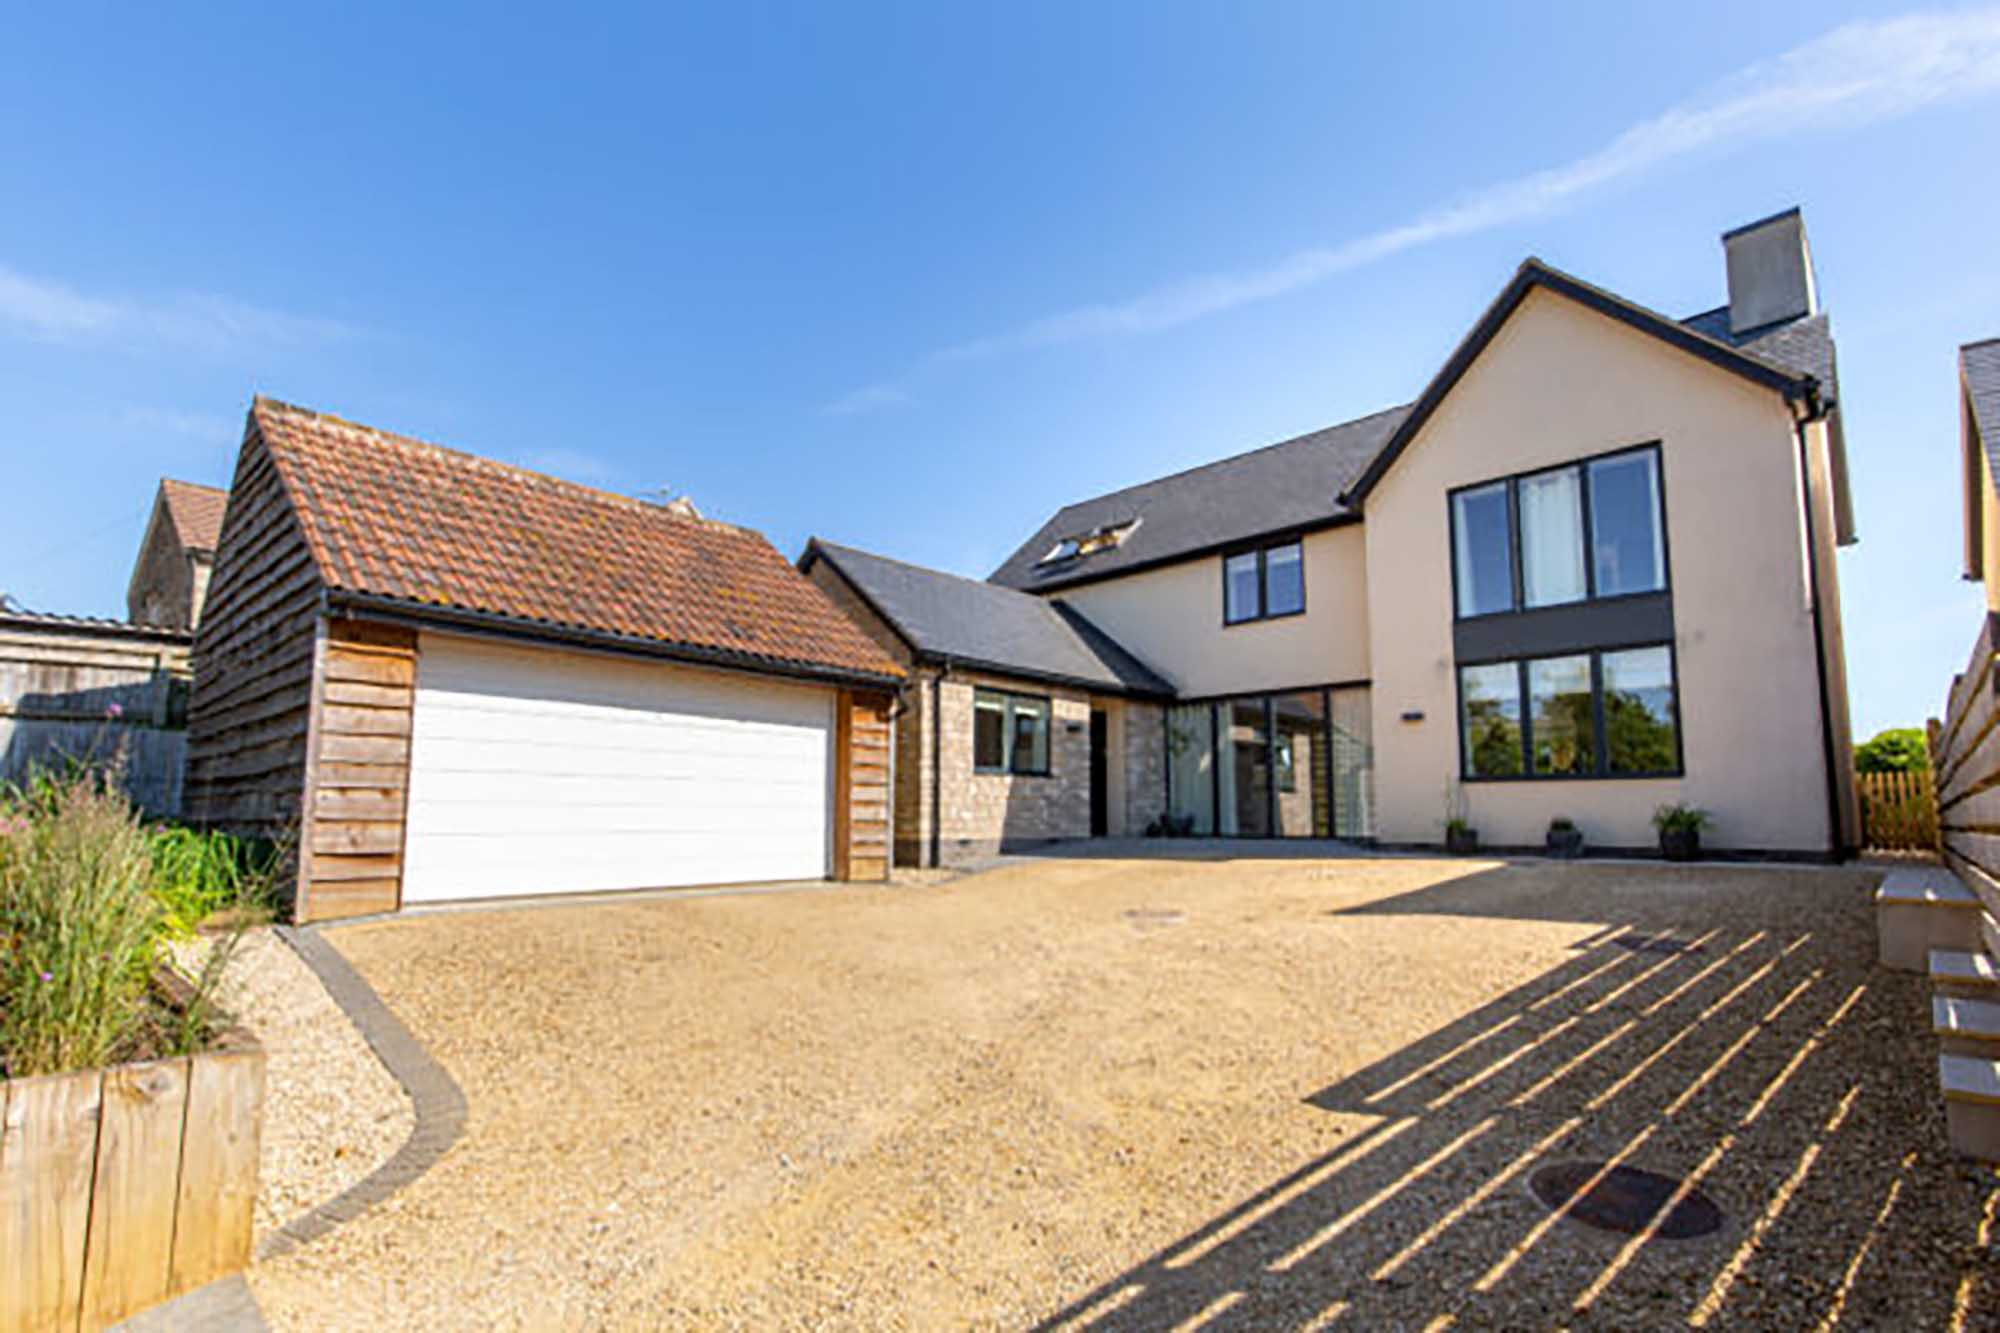 Contemporary eco-house set in lovely Somerset countryside.